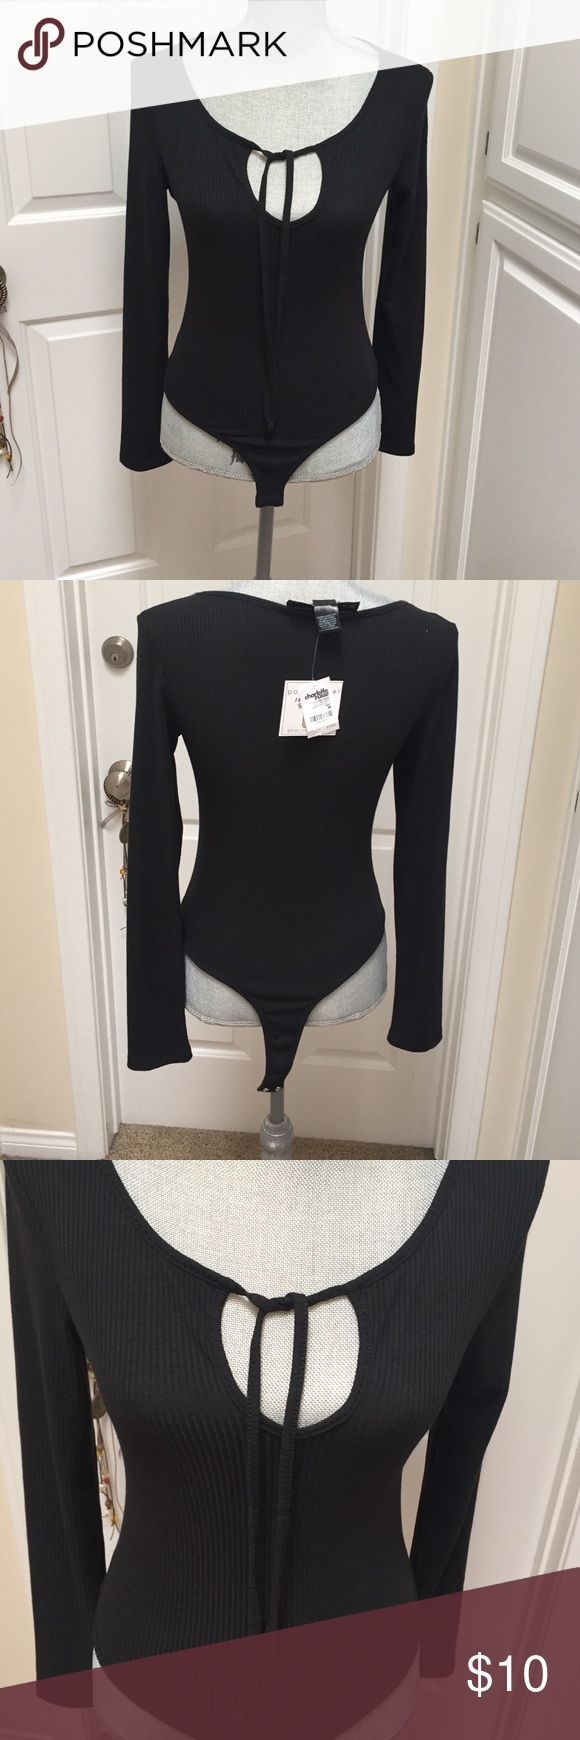 Charlotte Russe black long sleeve bodysuit Charlotte Russe black long sleeve bodysuit  with open cut in front with strings for can tie. Two snaps on bottom. NWT. As is Charlotte Russe Tops